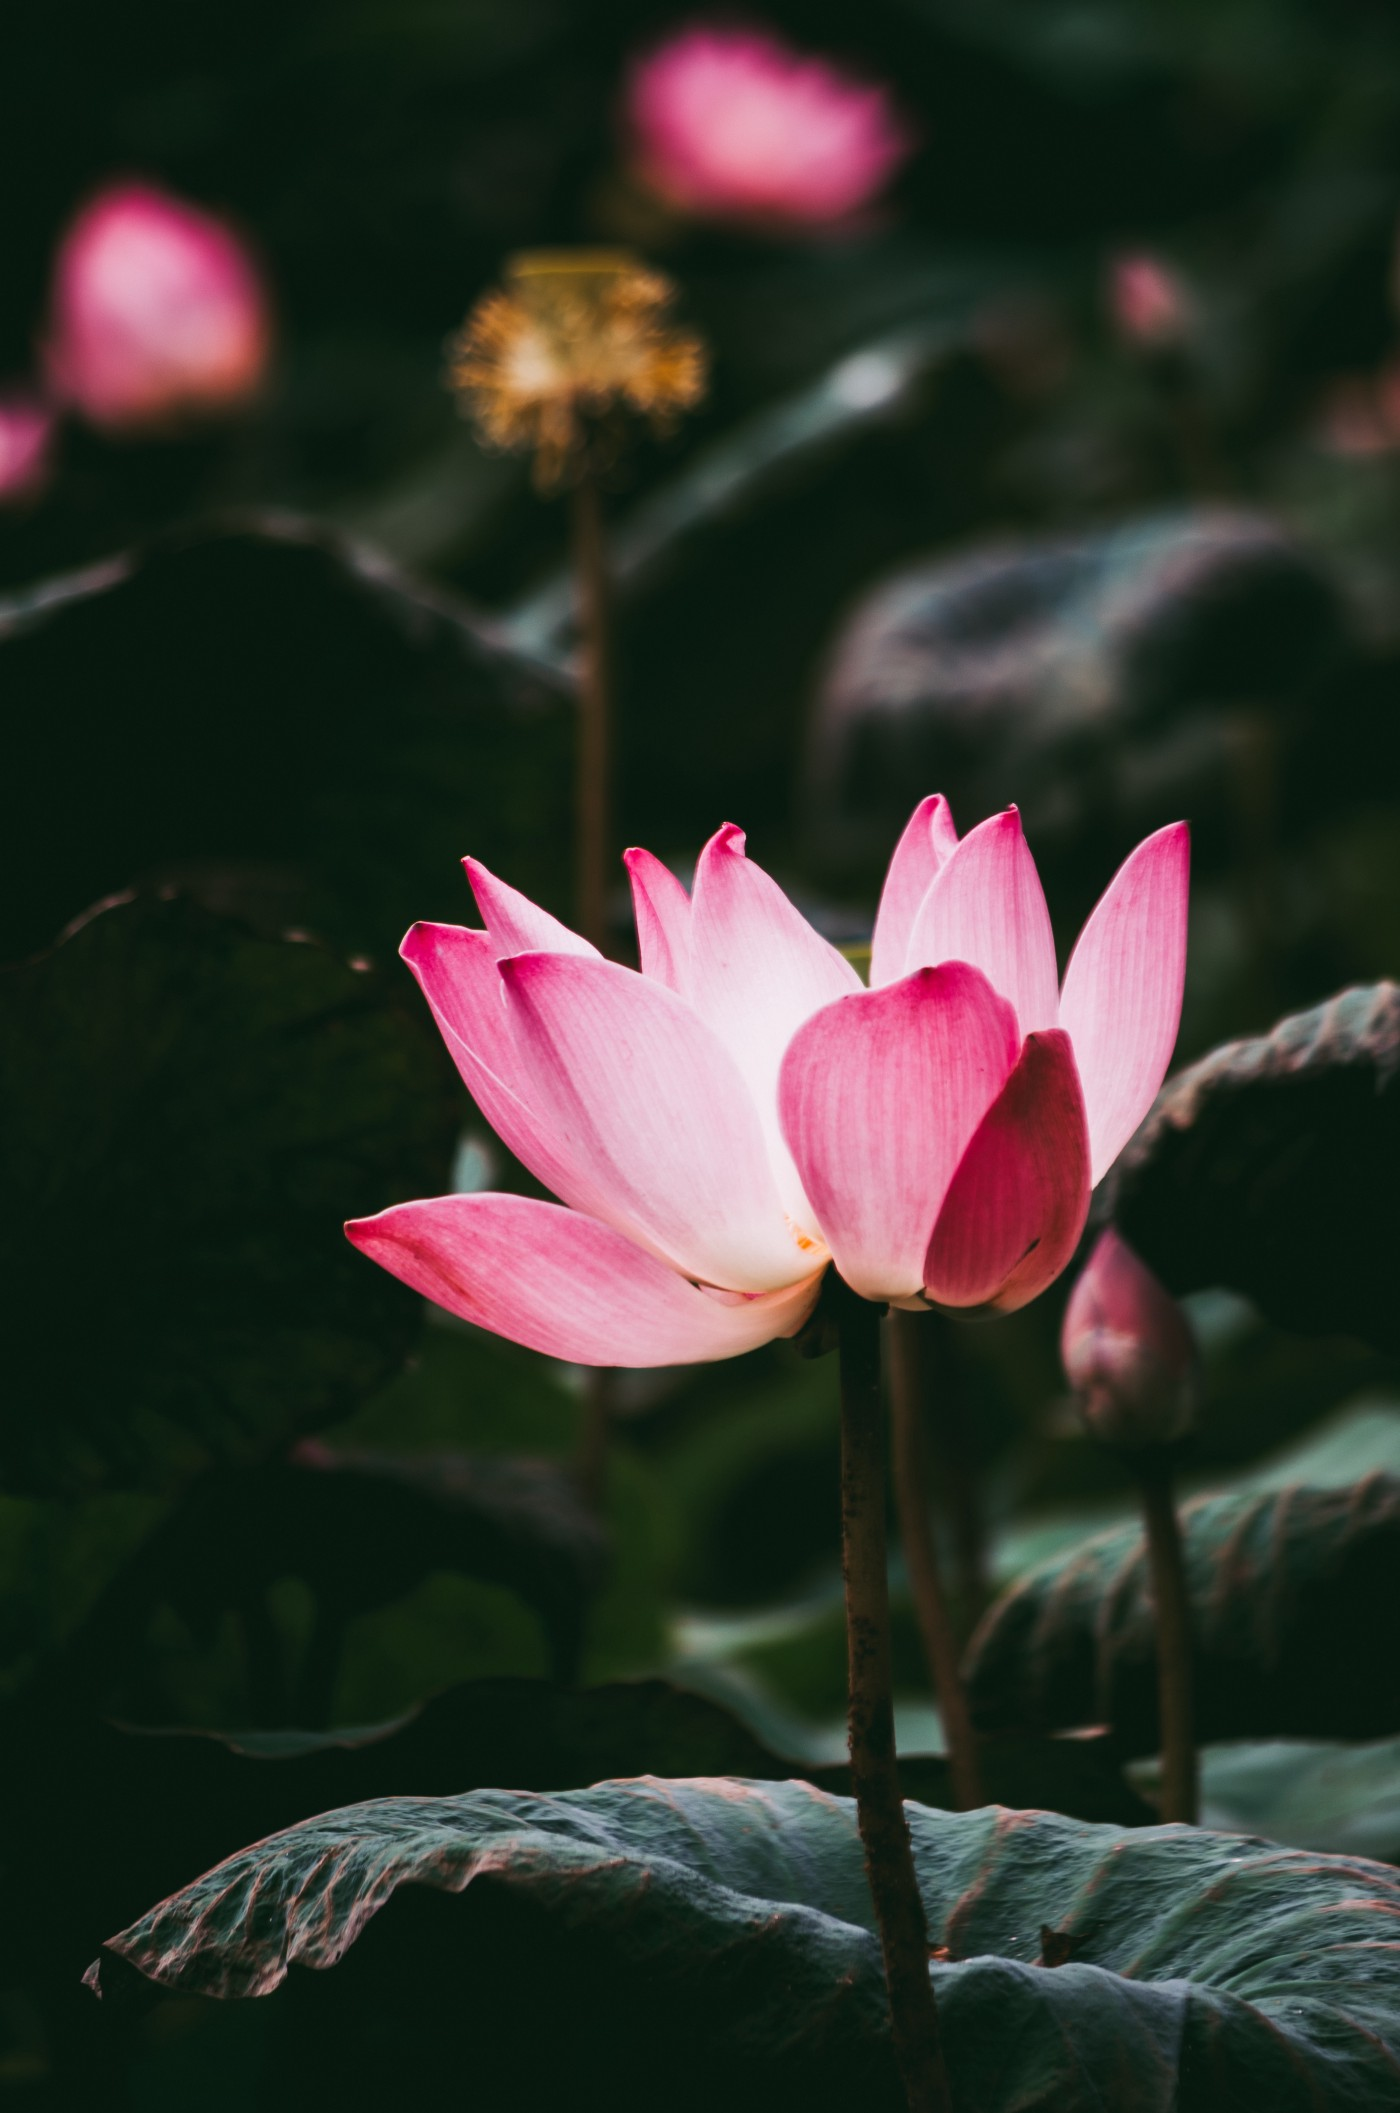 Image of the lotus flower which symbolizes purity, rebirth, and regeneration.